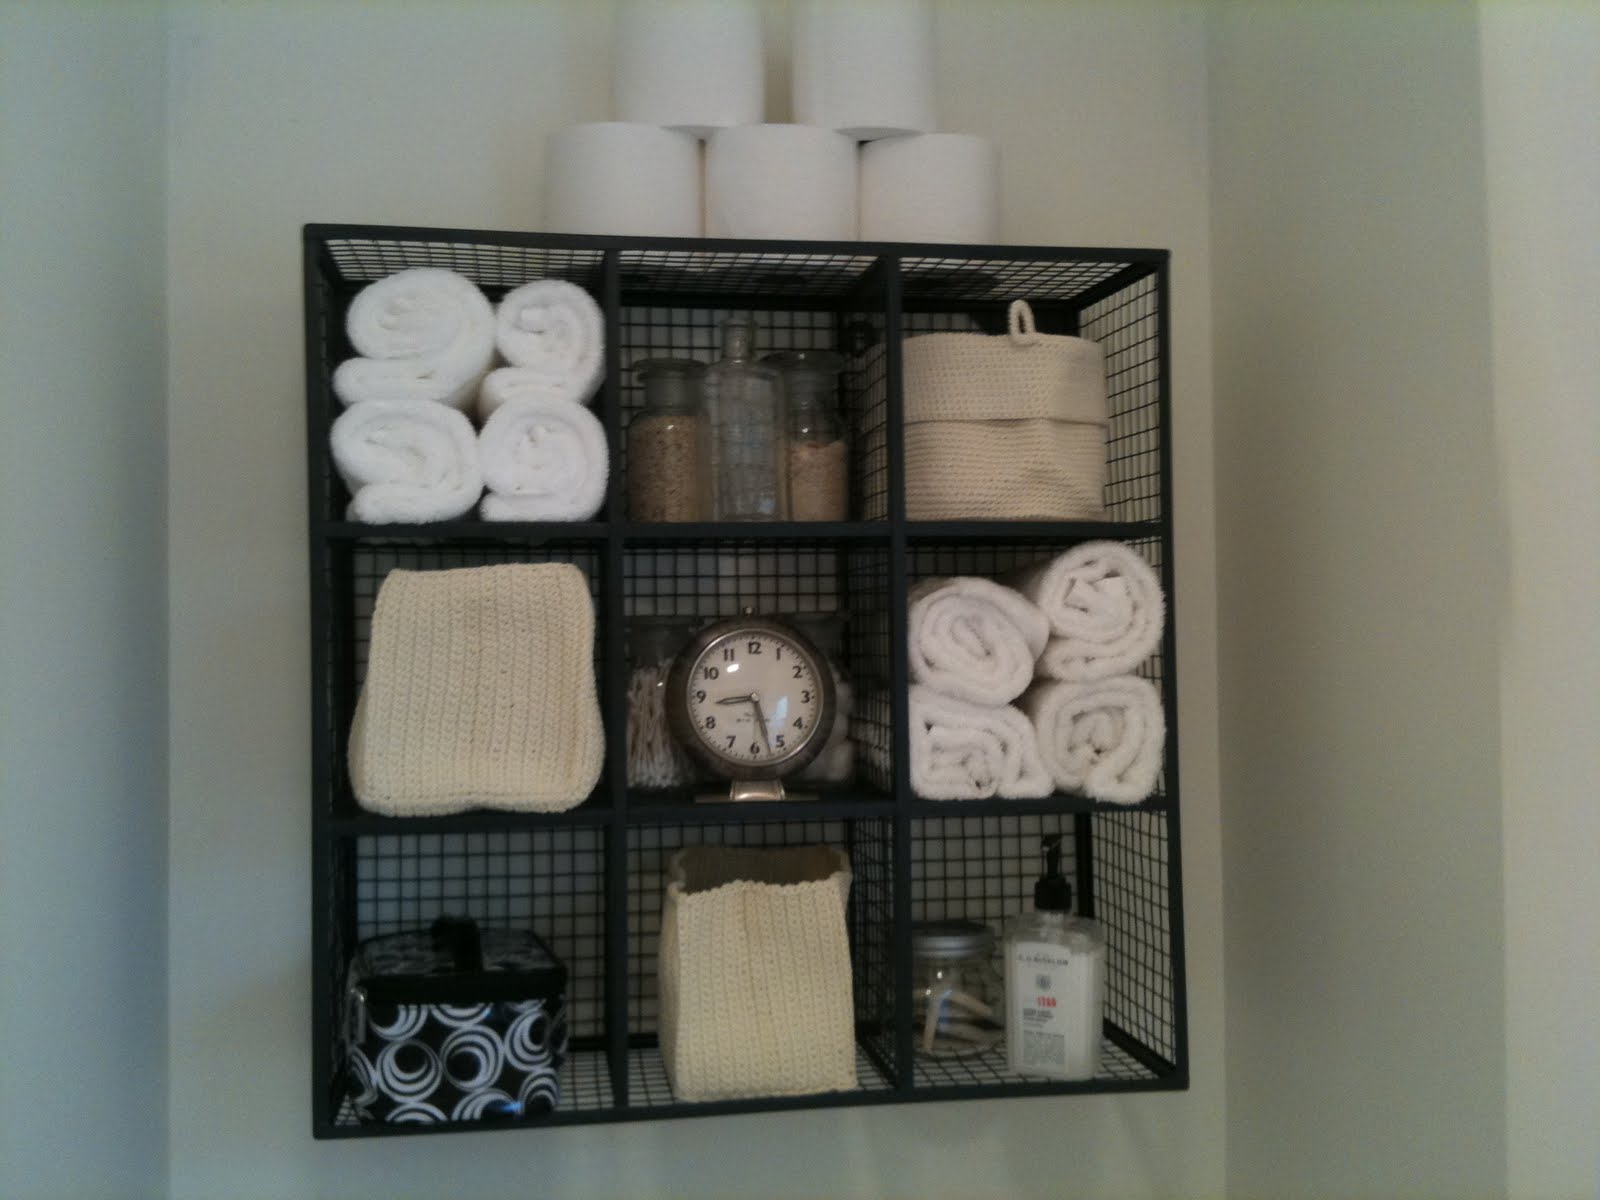 Bathroom Towel Cabinets Unique Furniture Design Ideas Wall regarding sizing 1600 X 1200